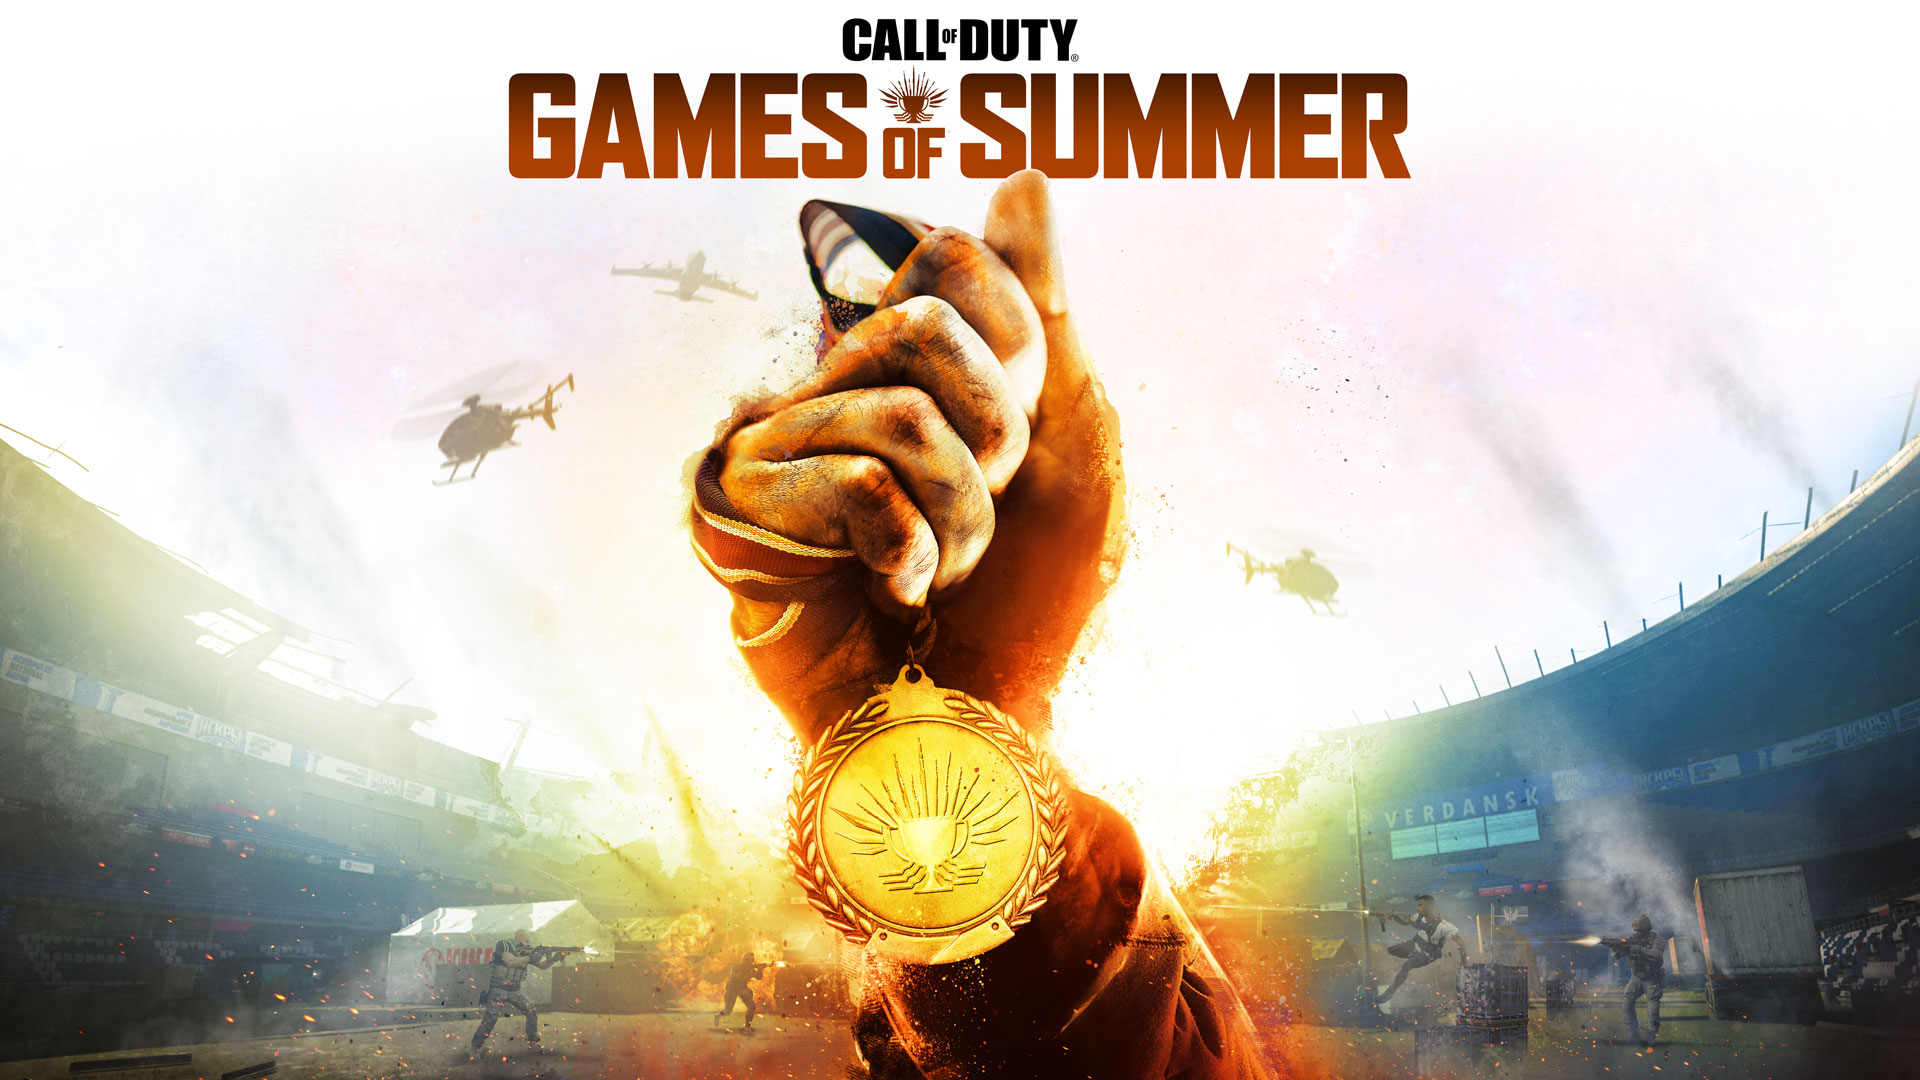 Games of Summer Warzone